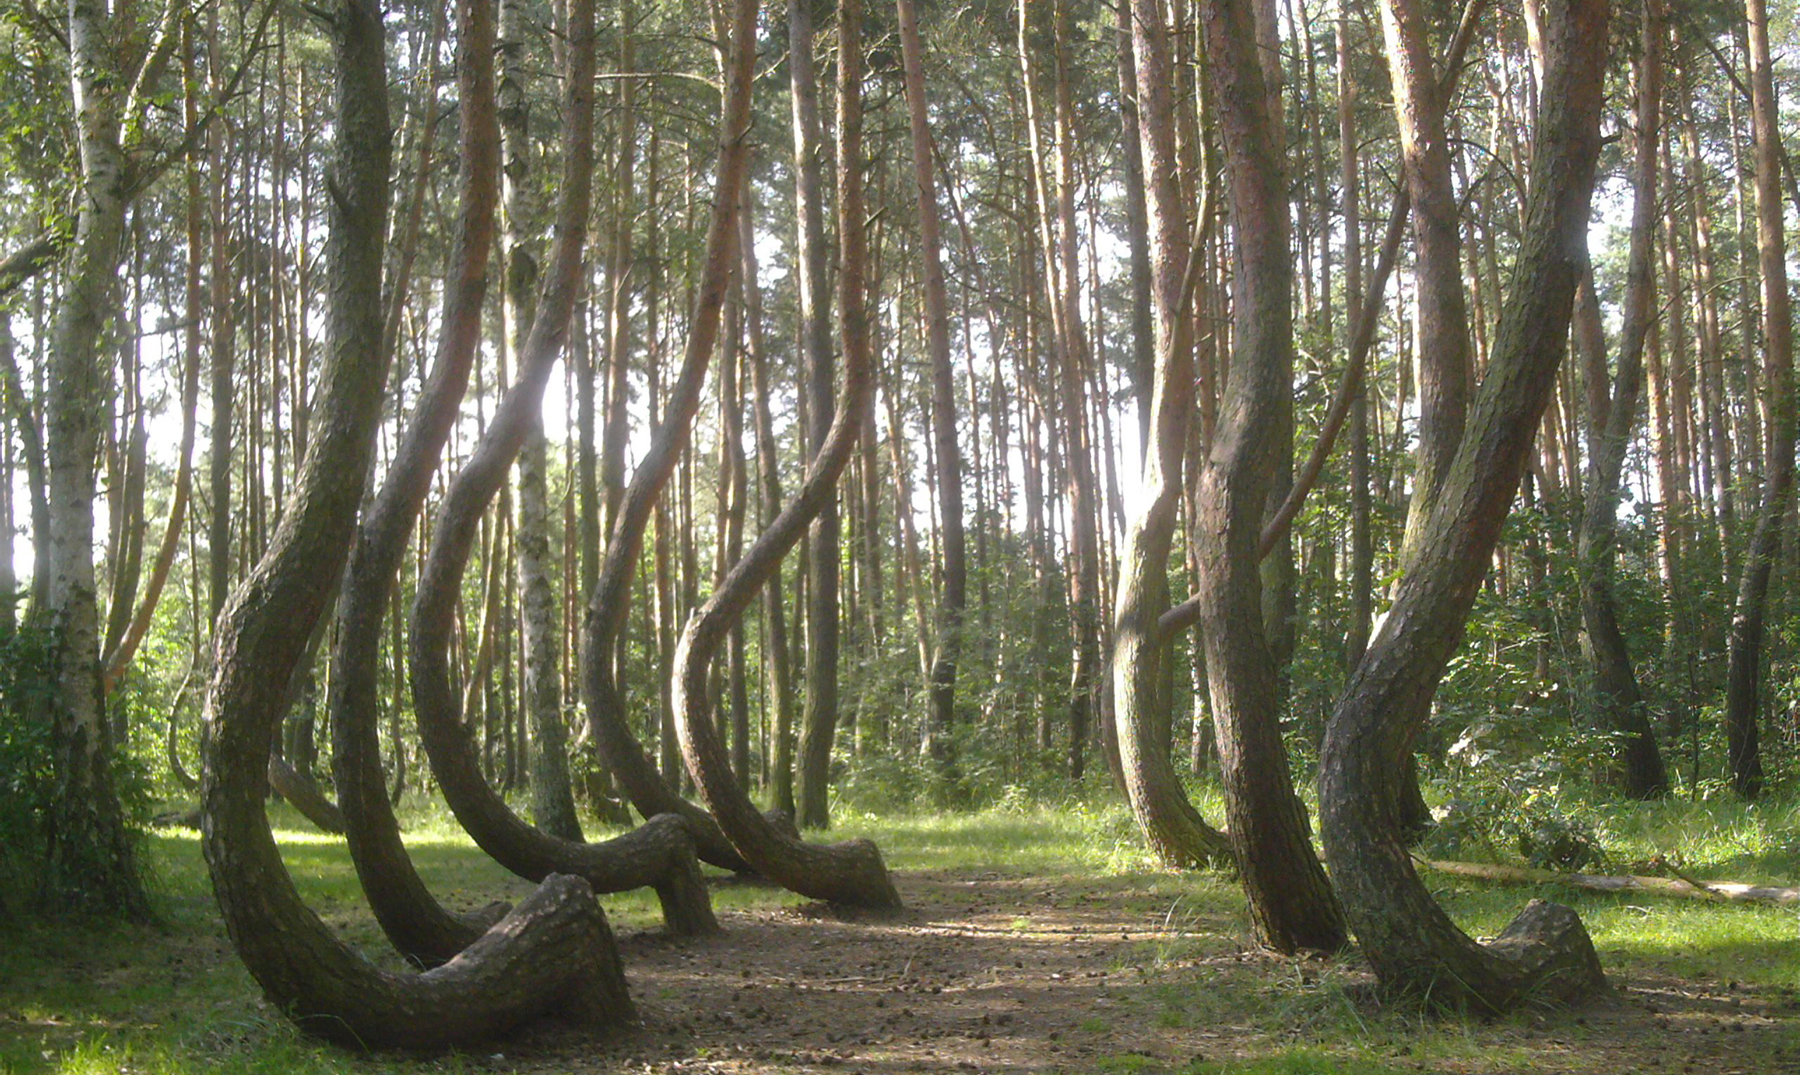 El Misterioso Bosque Torcido De Polonia on Furniture Made From Tree Trunks